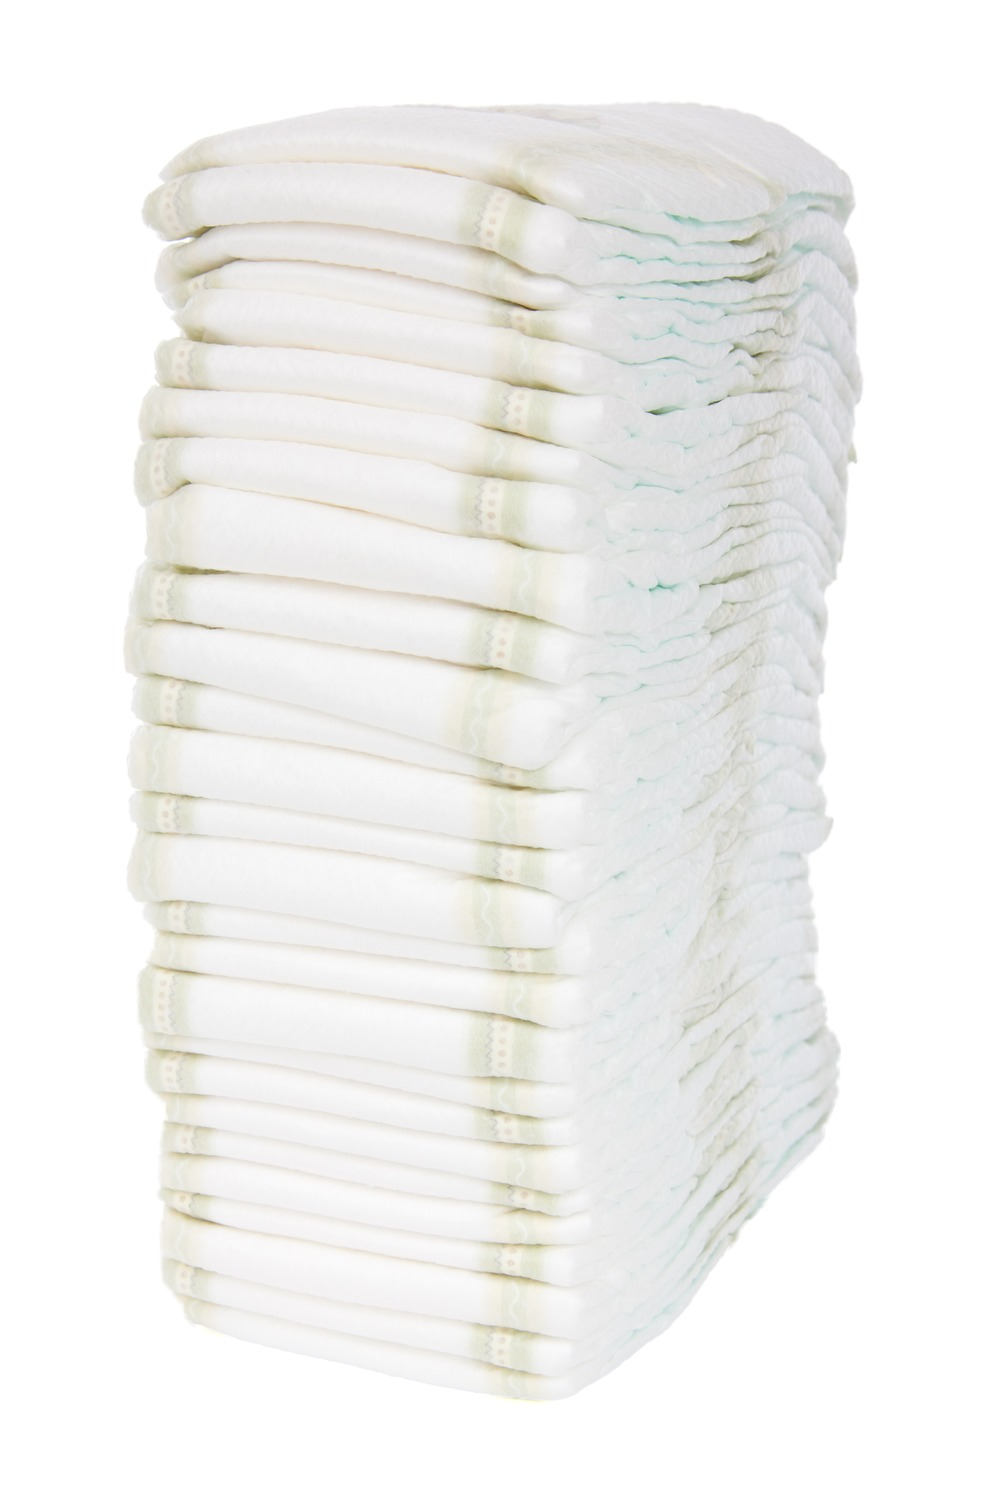 disposable_diapers_200180.jpg